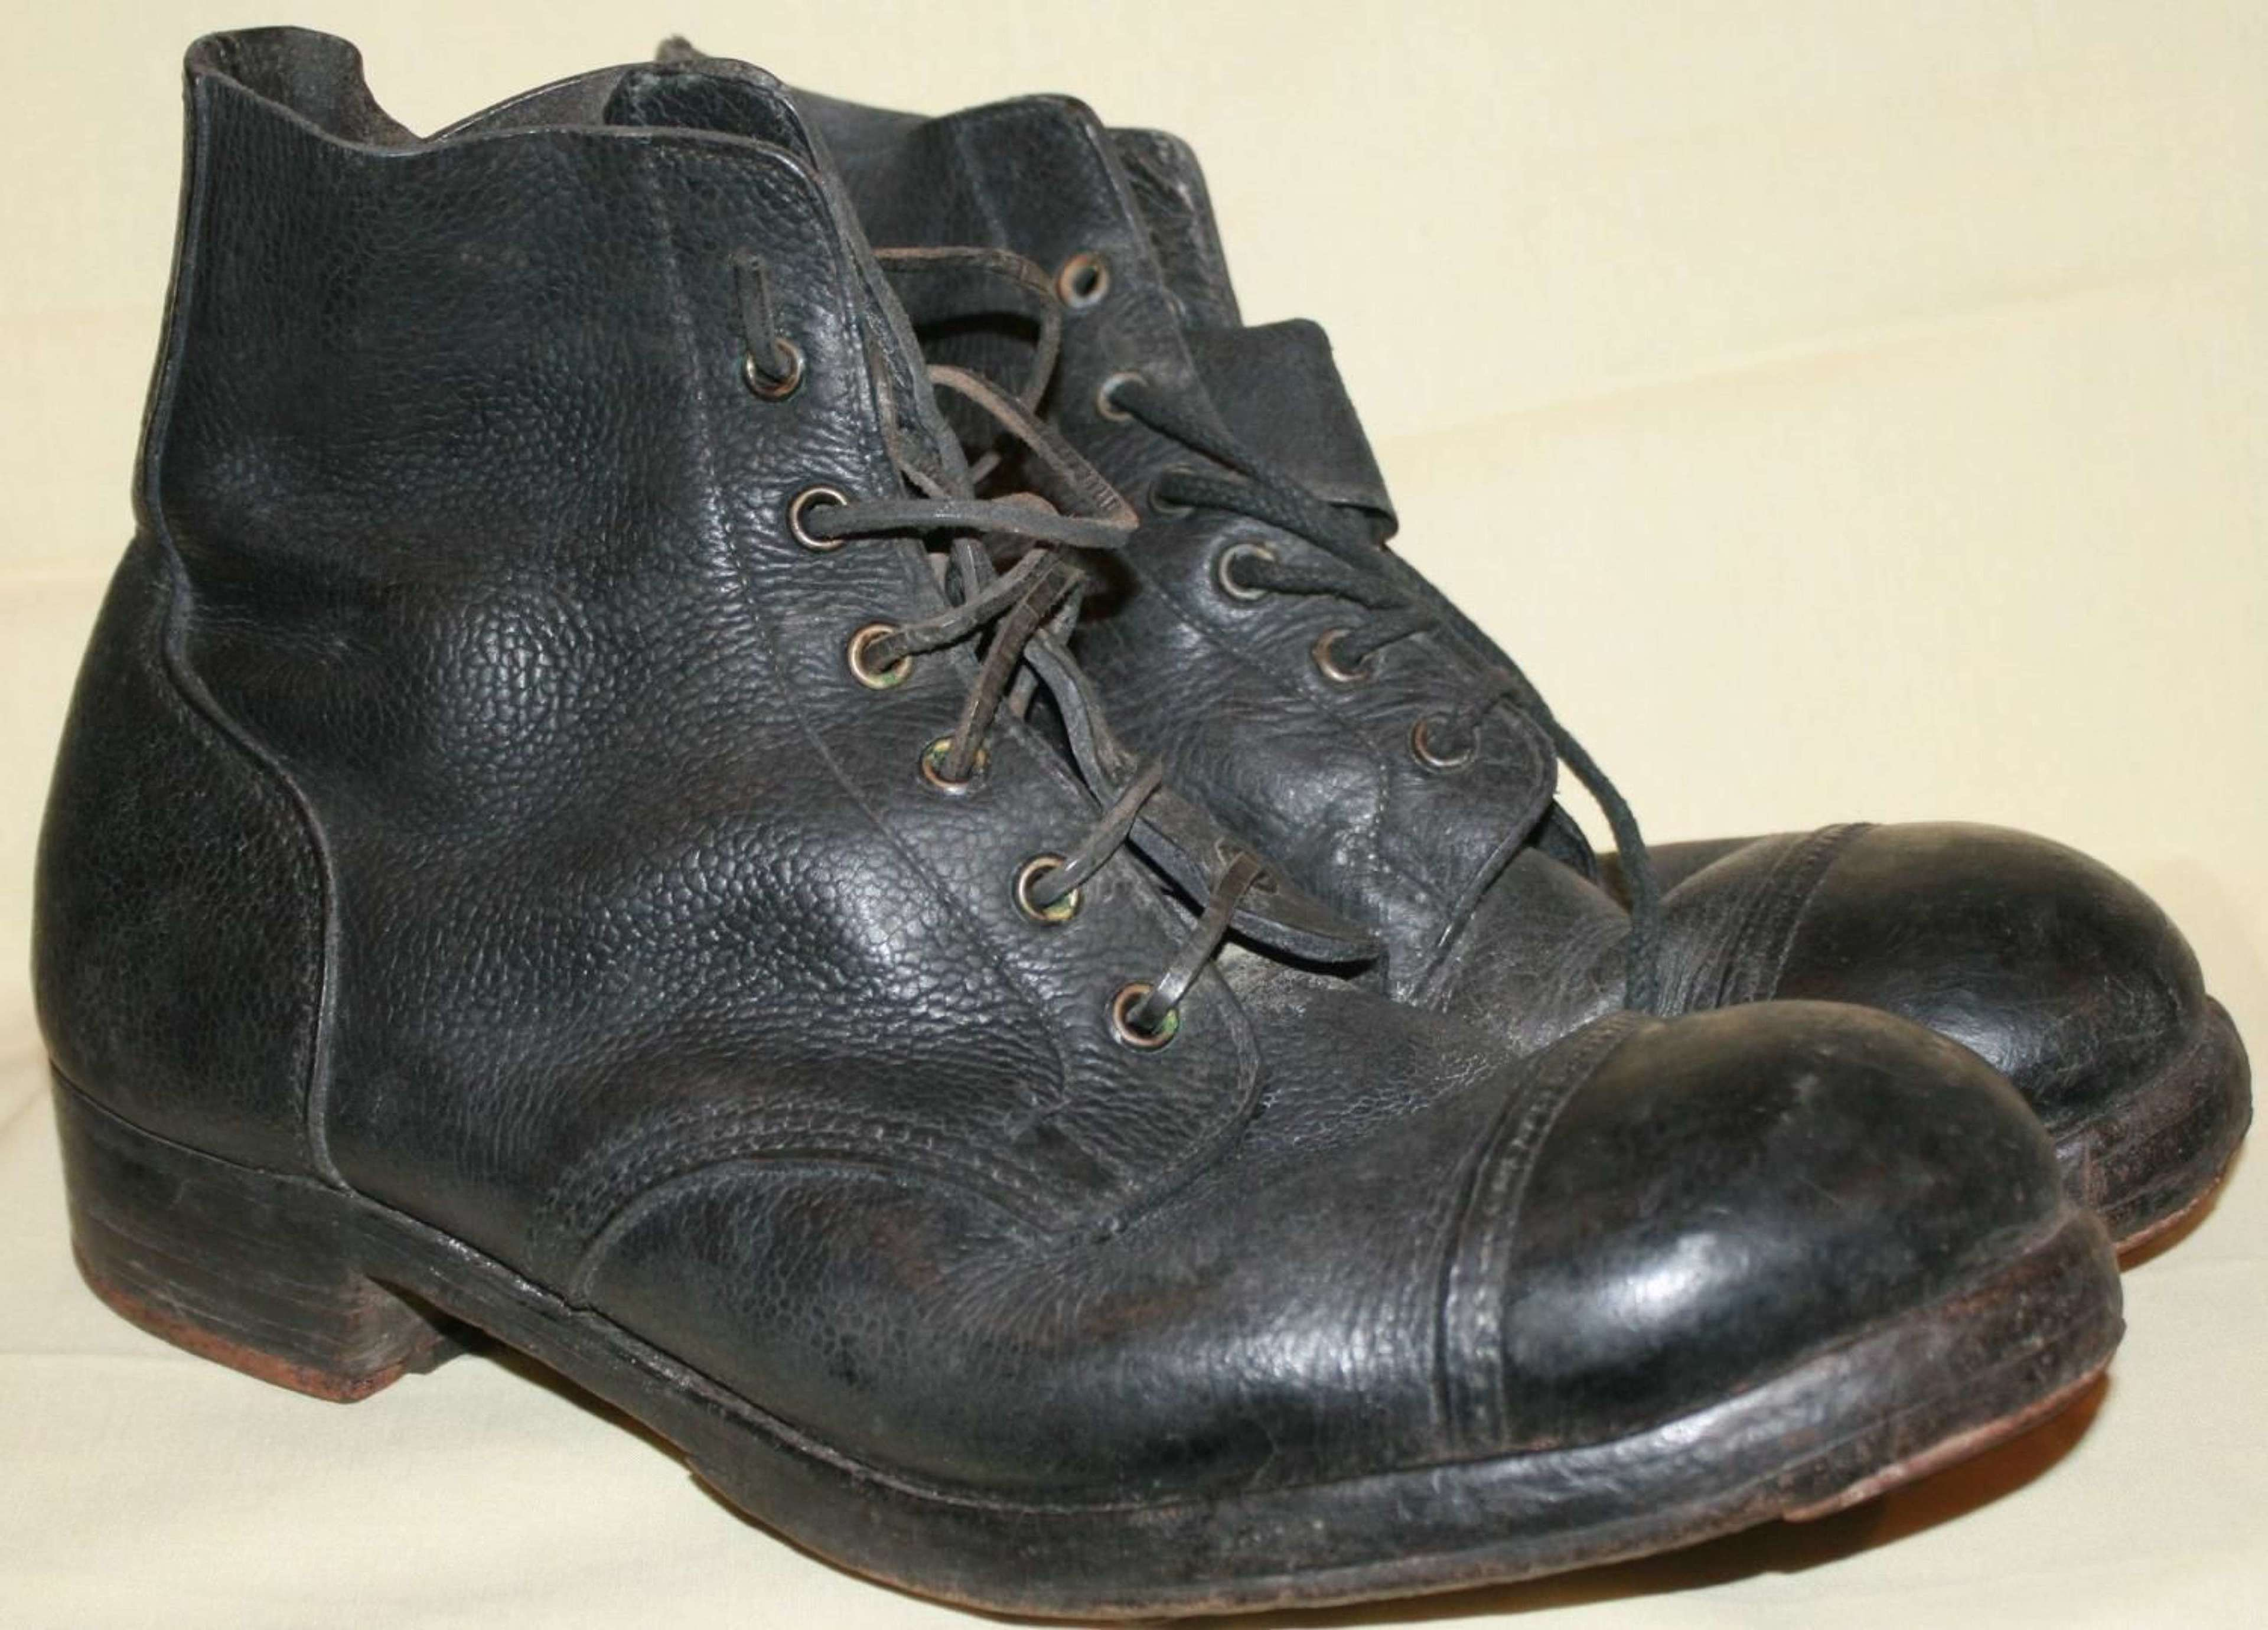 A PAIR OF BLACK HOBNAIL BOOTS 1942 DATED